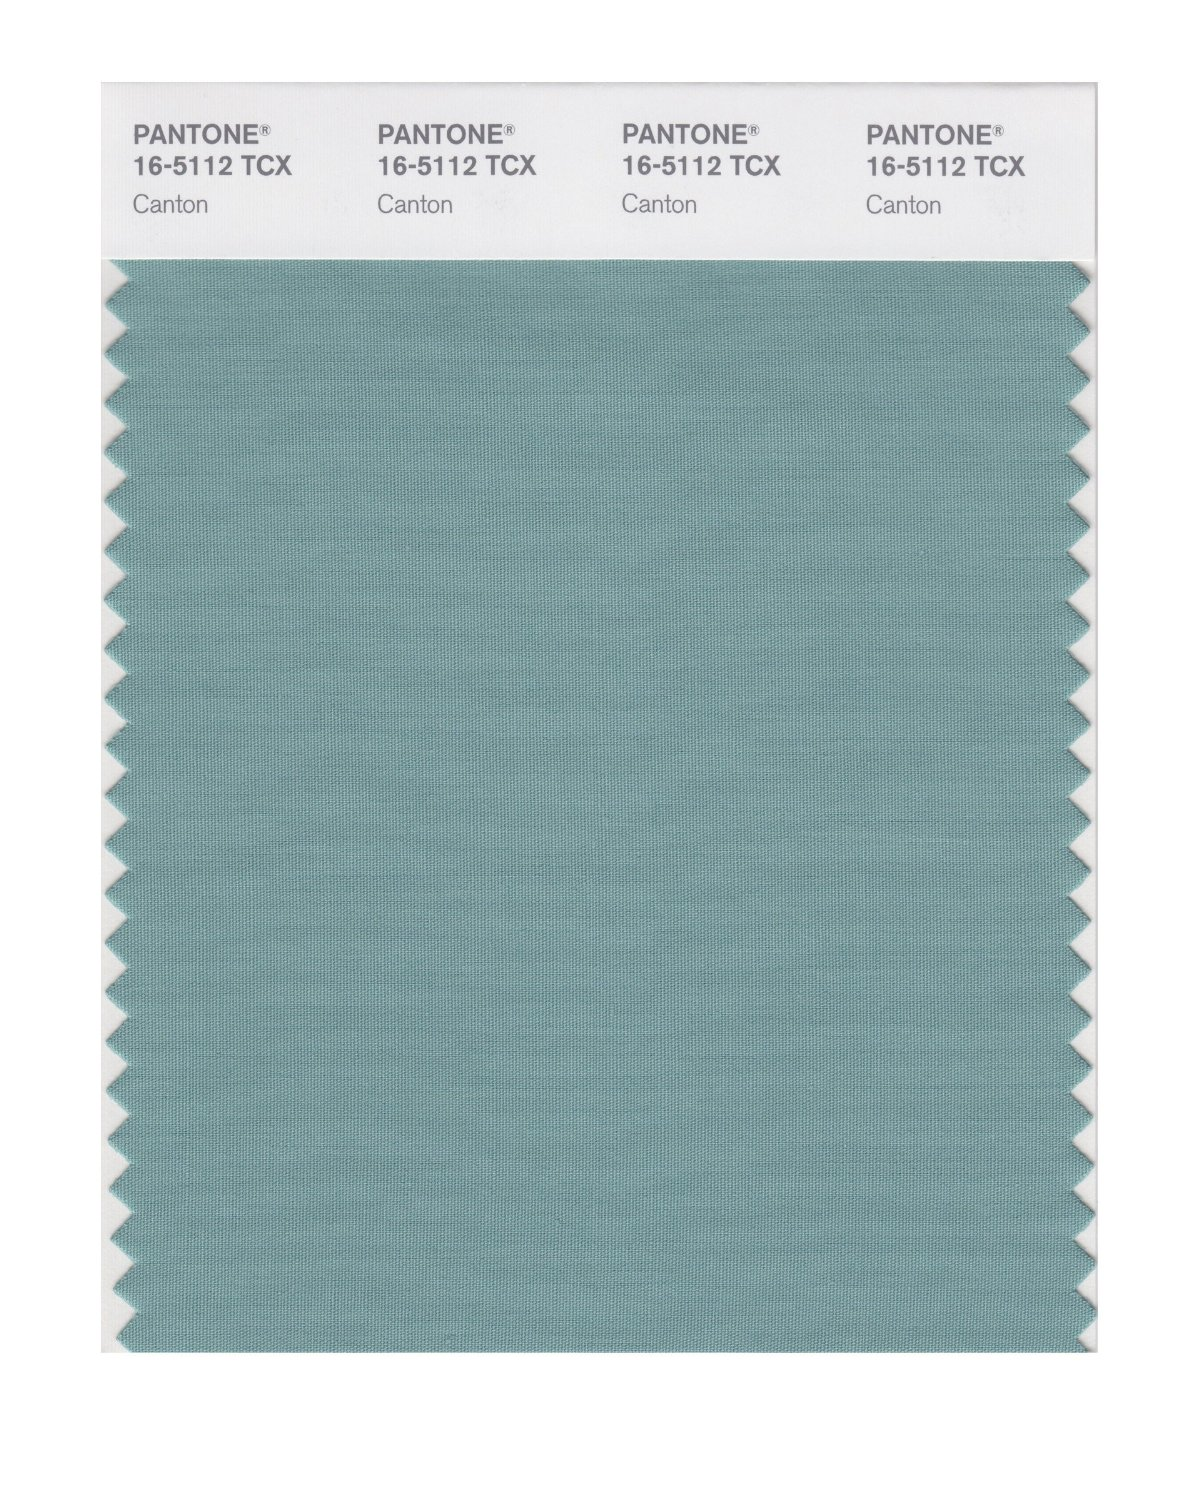 Pantone Smart Swatch 16-5112 Canton